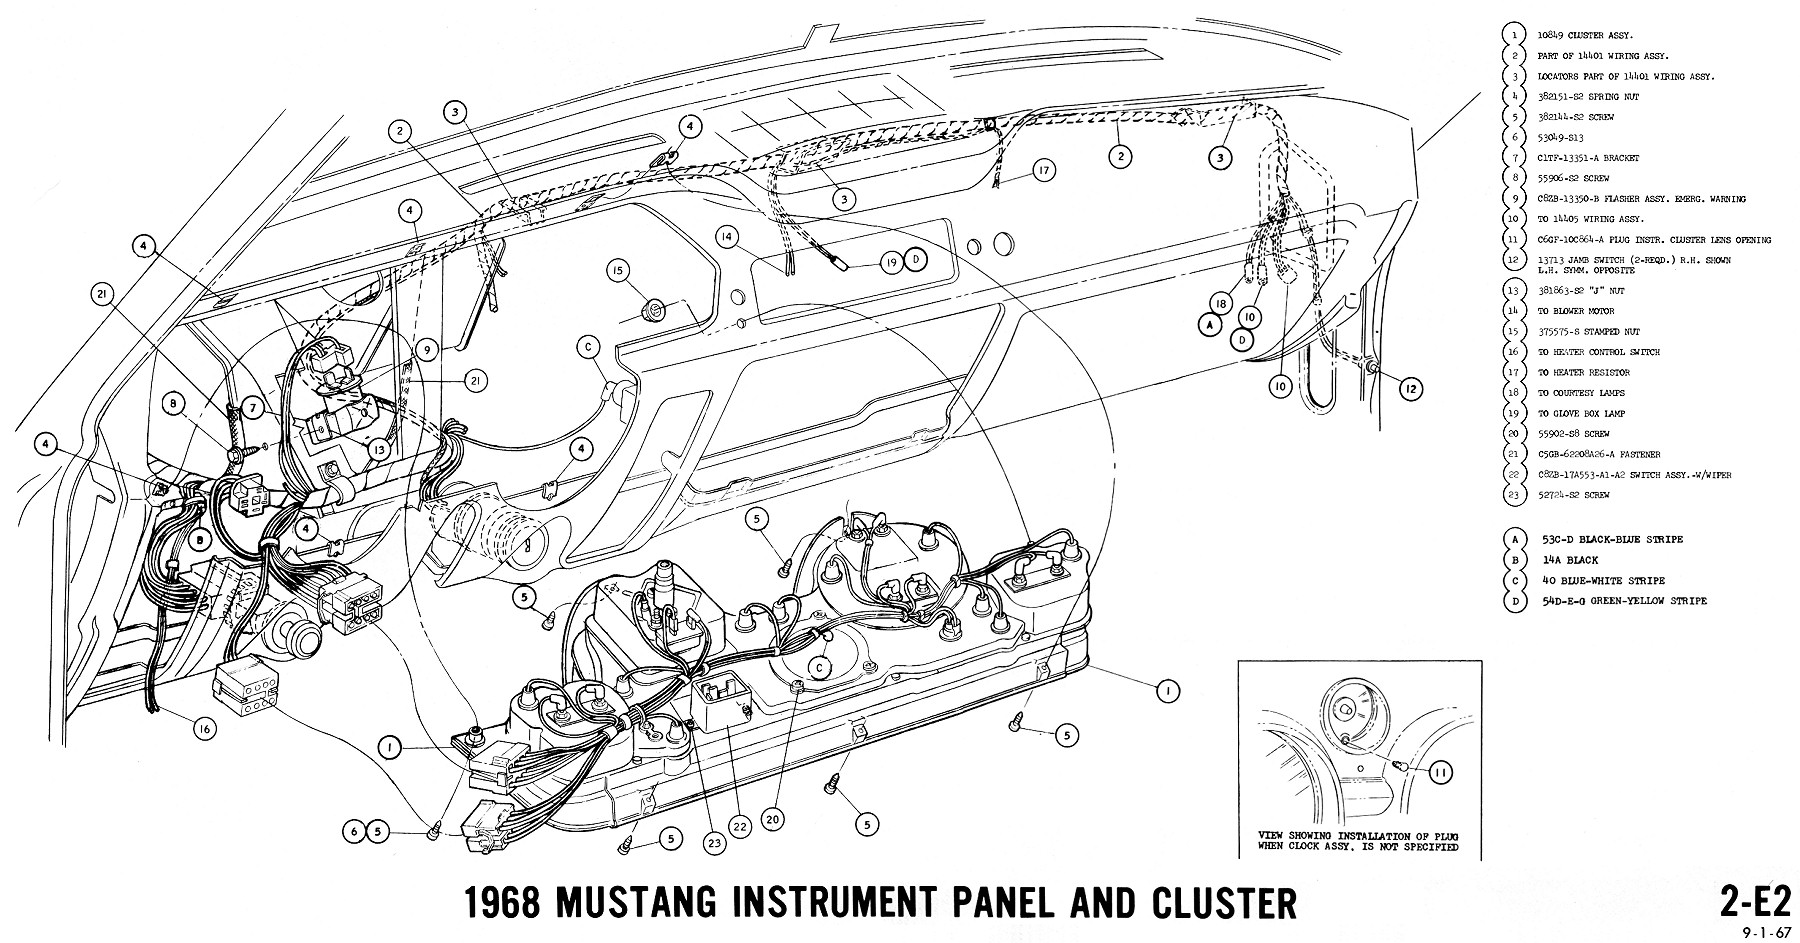 1967 mustang cluster wiring schematic  1967  free printable wiring diagrams database